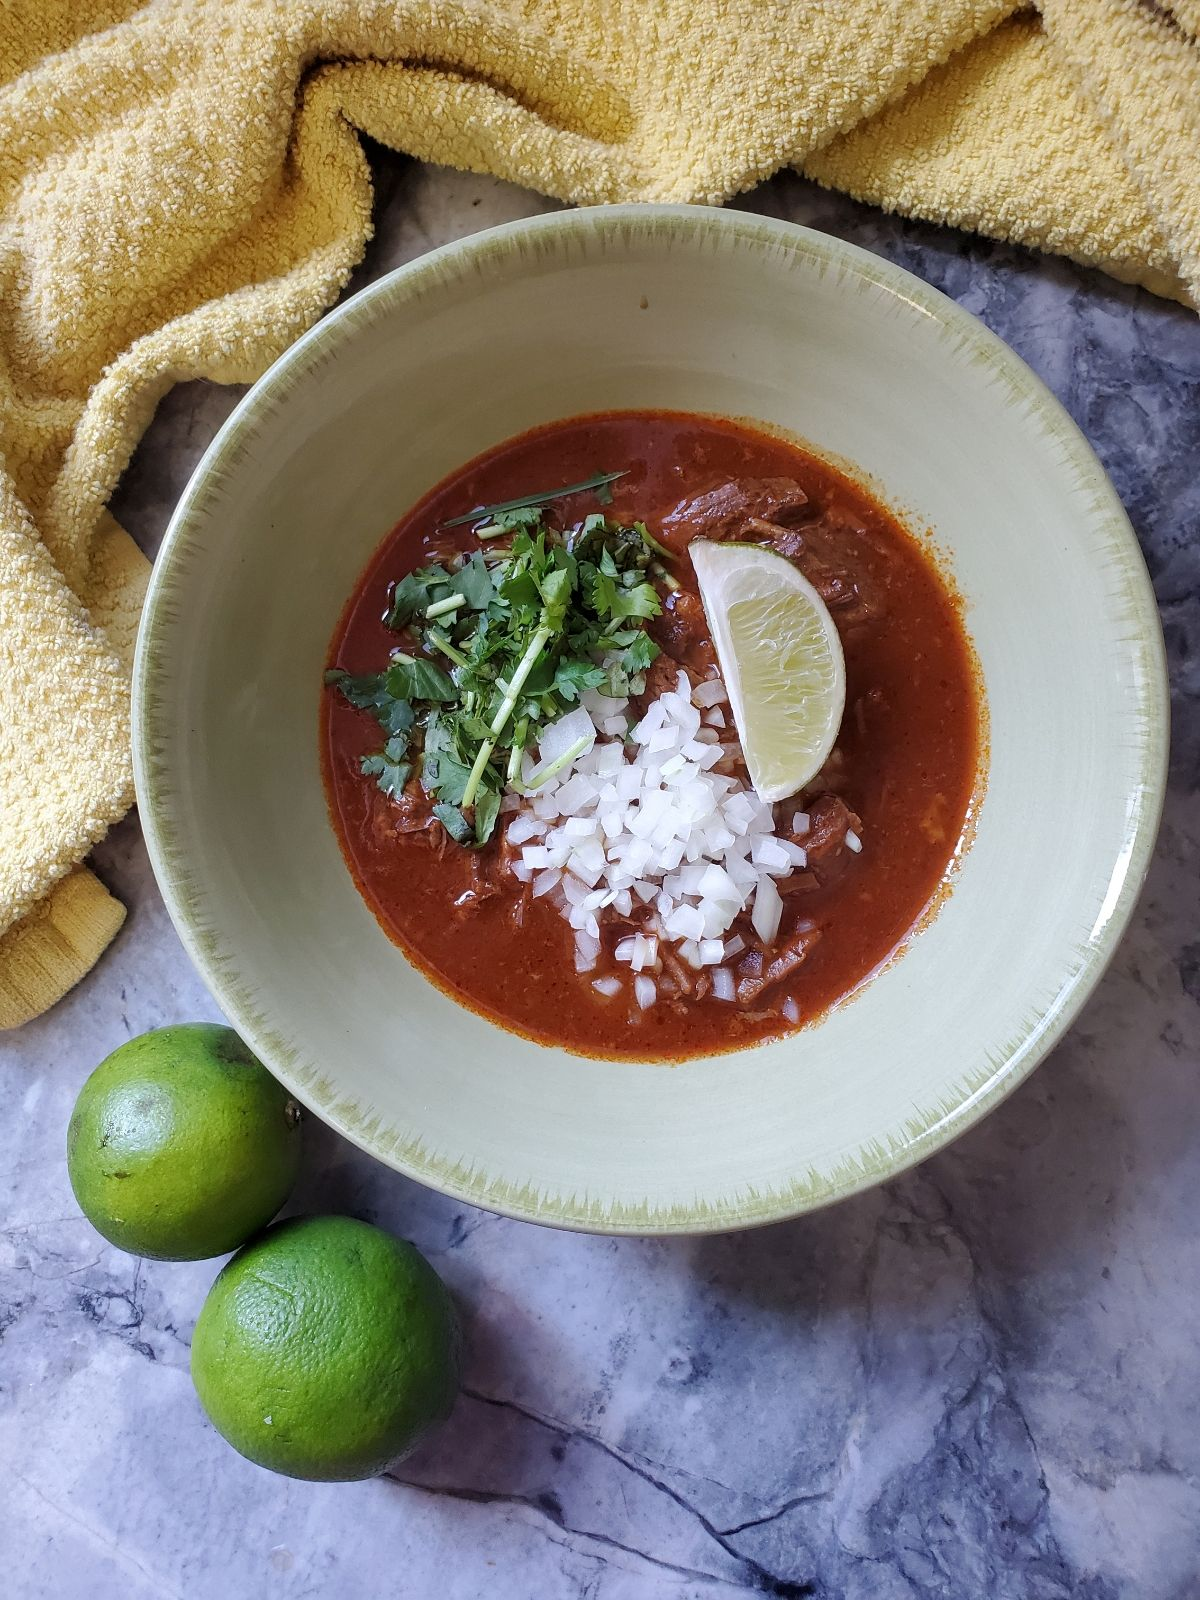 Yellow kitchen towel, a green bowl with red stew, onion, cilantro and a lime wedge, and 2 green limes in the bottom left corner